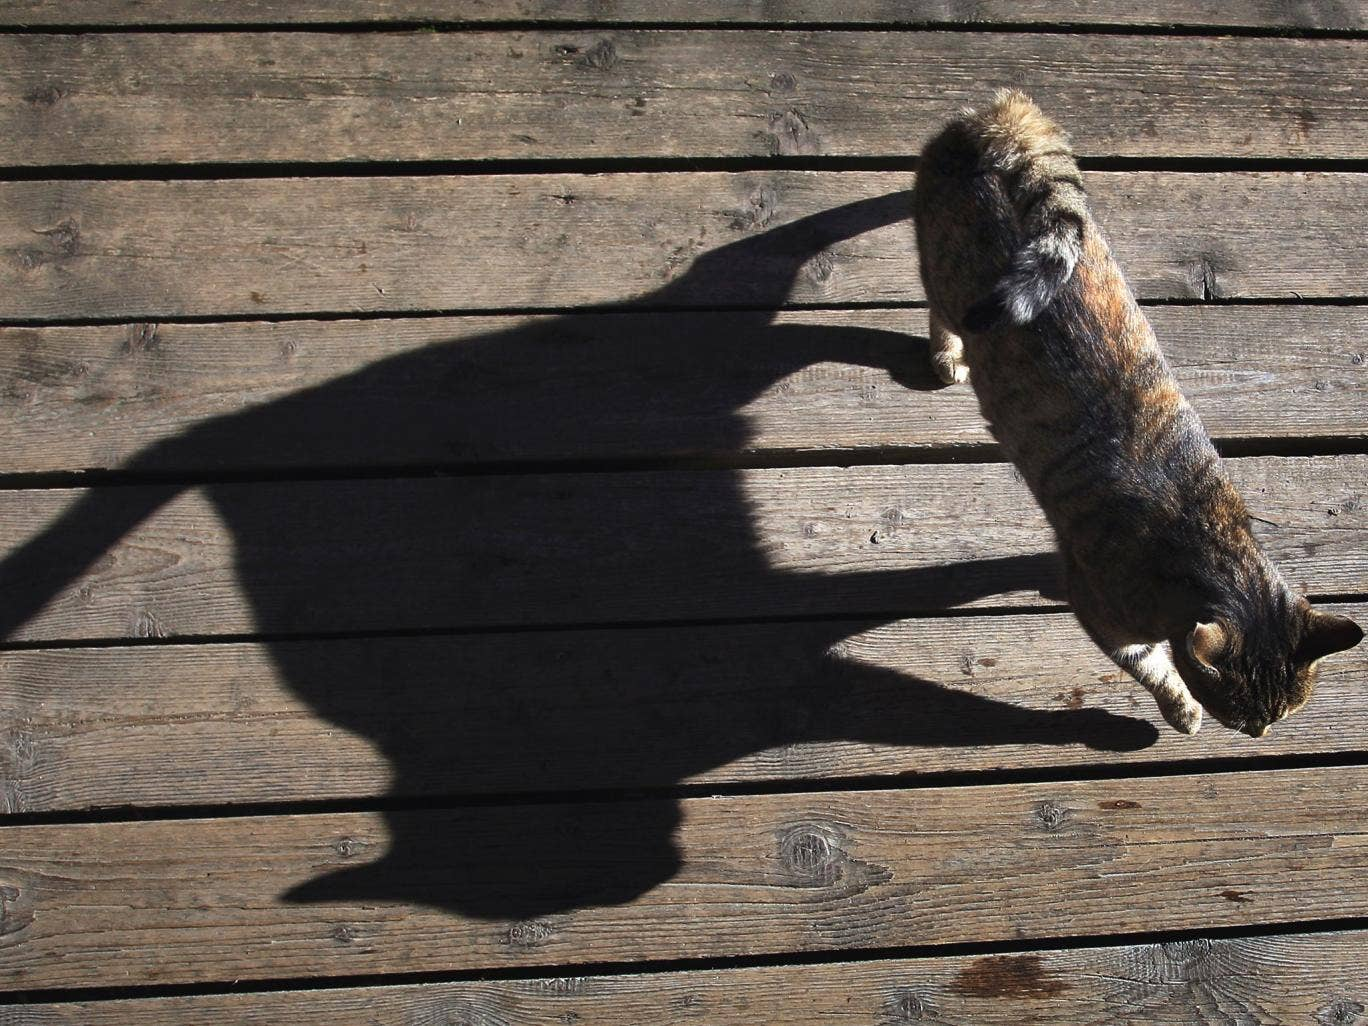 A cat casts a long shadow as it walks over the terrace of an outdoor cafe near Seeg, southern Germany, on November 12, 2013.